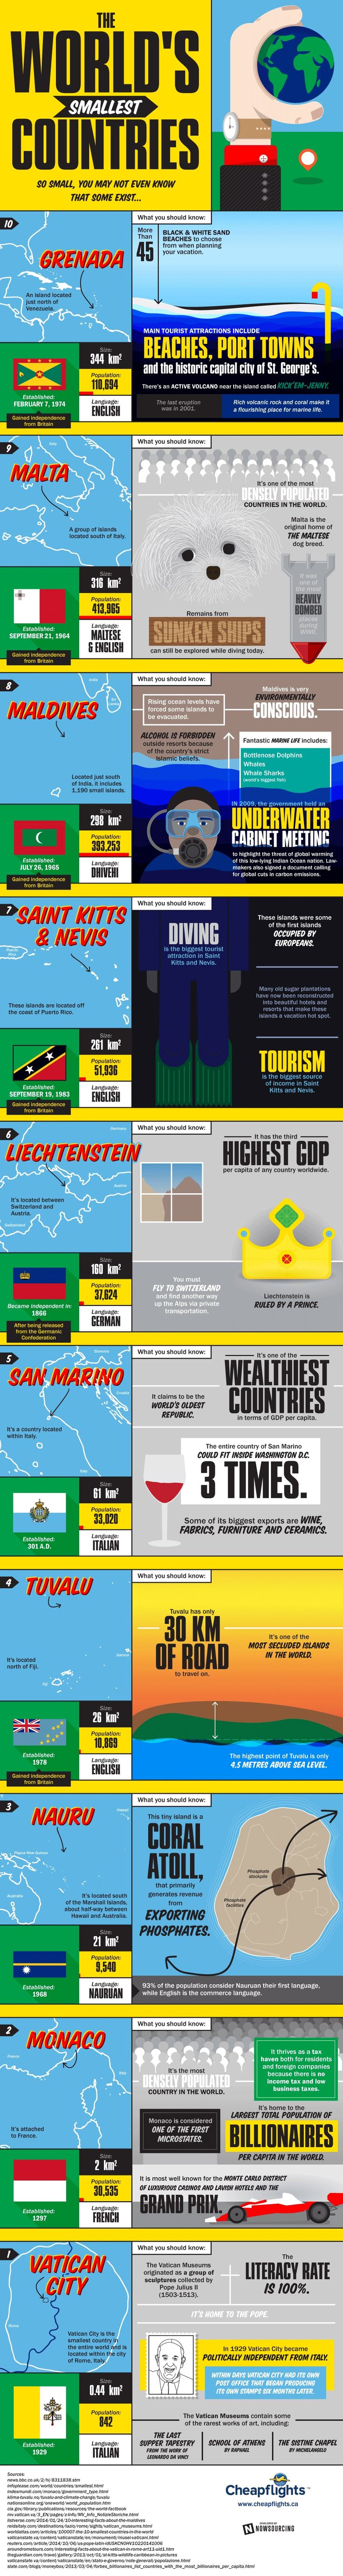 Infographic: The world's smallest countries - Matador Network